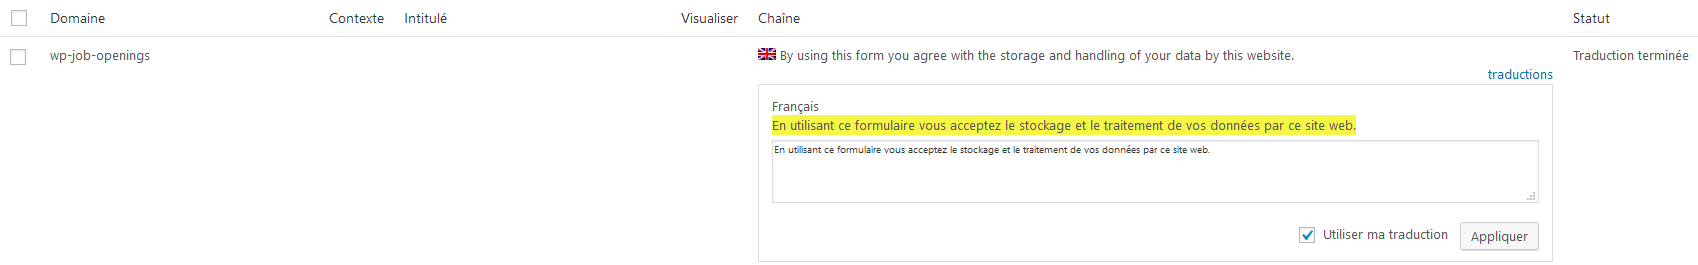 Screenshot_2019-09-29 Traduction de chaînes ‹ Immobilier Education — WordPress.png